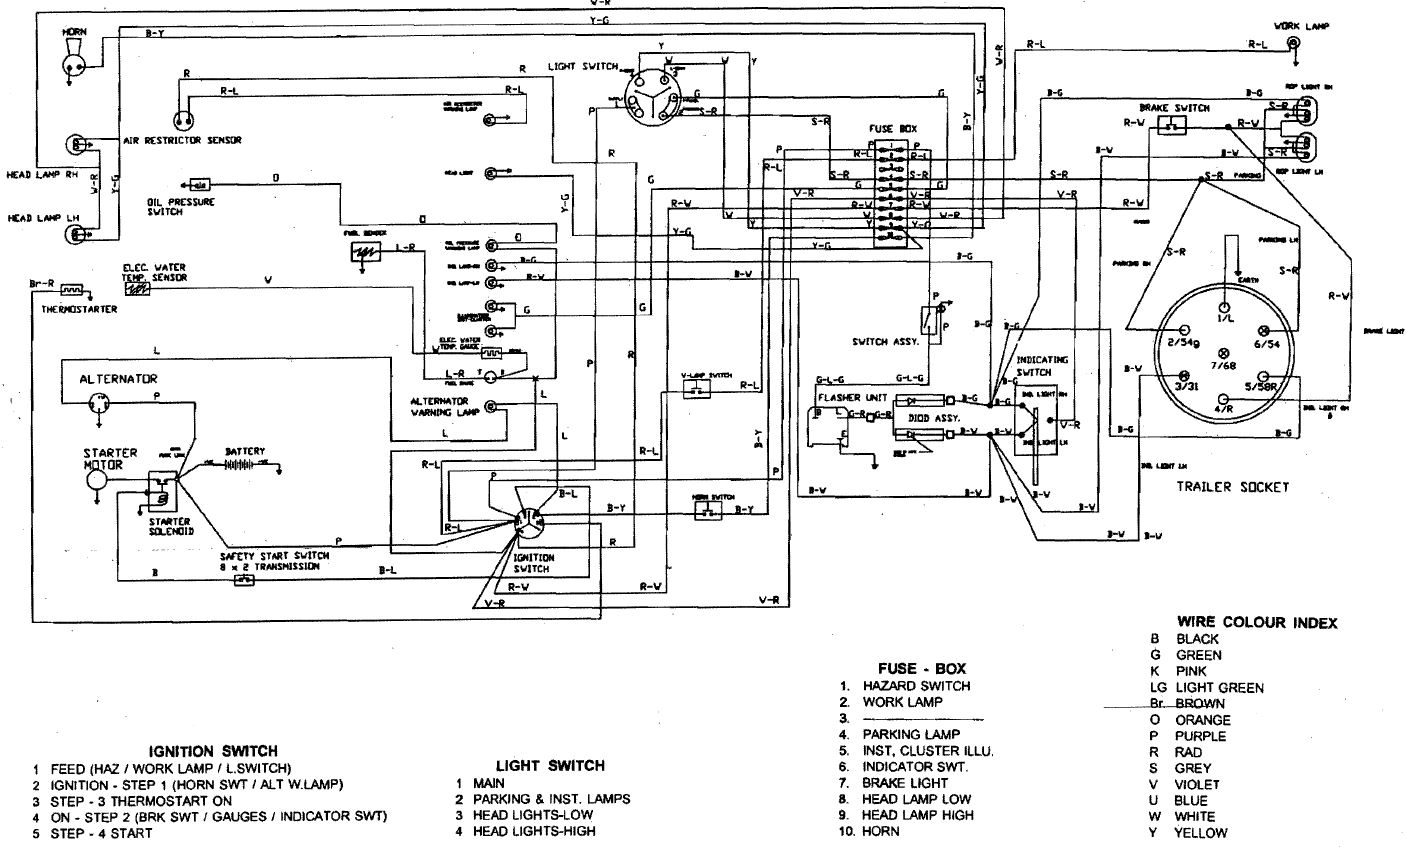 [DIAGRAM_5LK]  CA3183 Kubota Tractor Alternator Wiring Diagram | Wiring Resources | Kubota Denso Alternator Wiring Diagram |  | ChangeIP